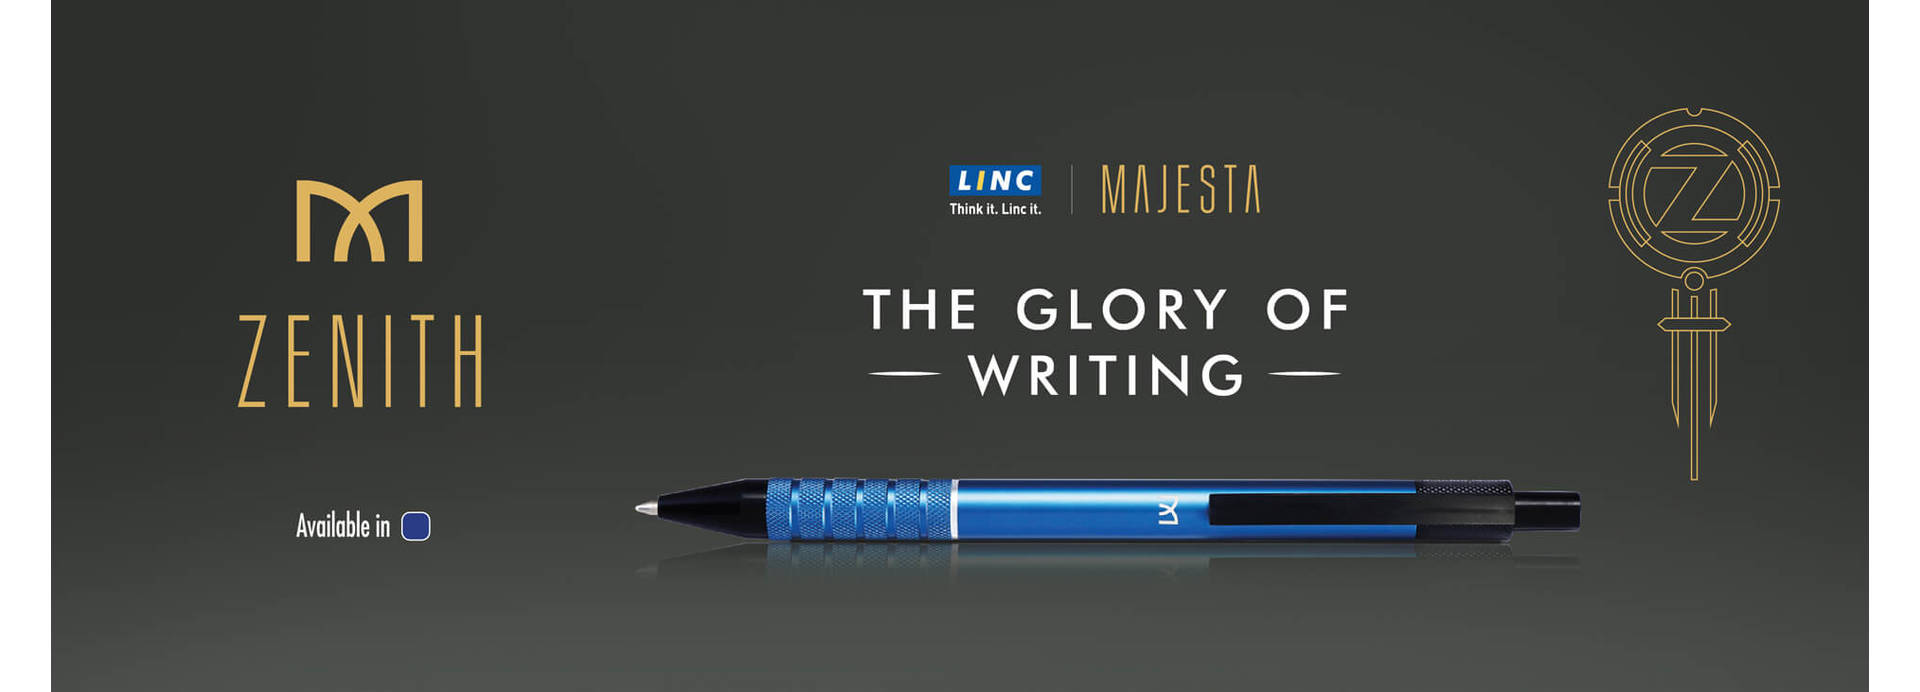 most comfortable pen for writing